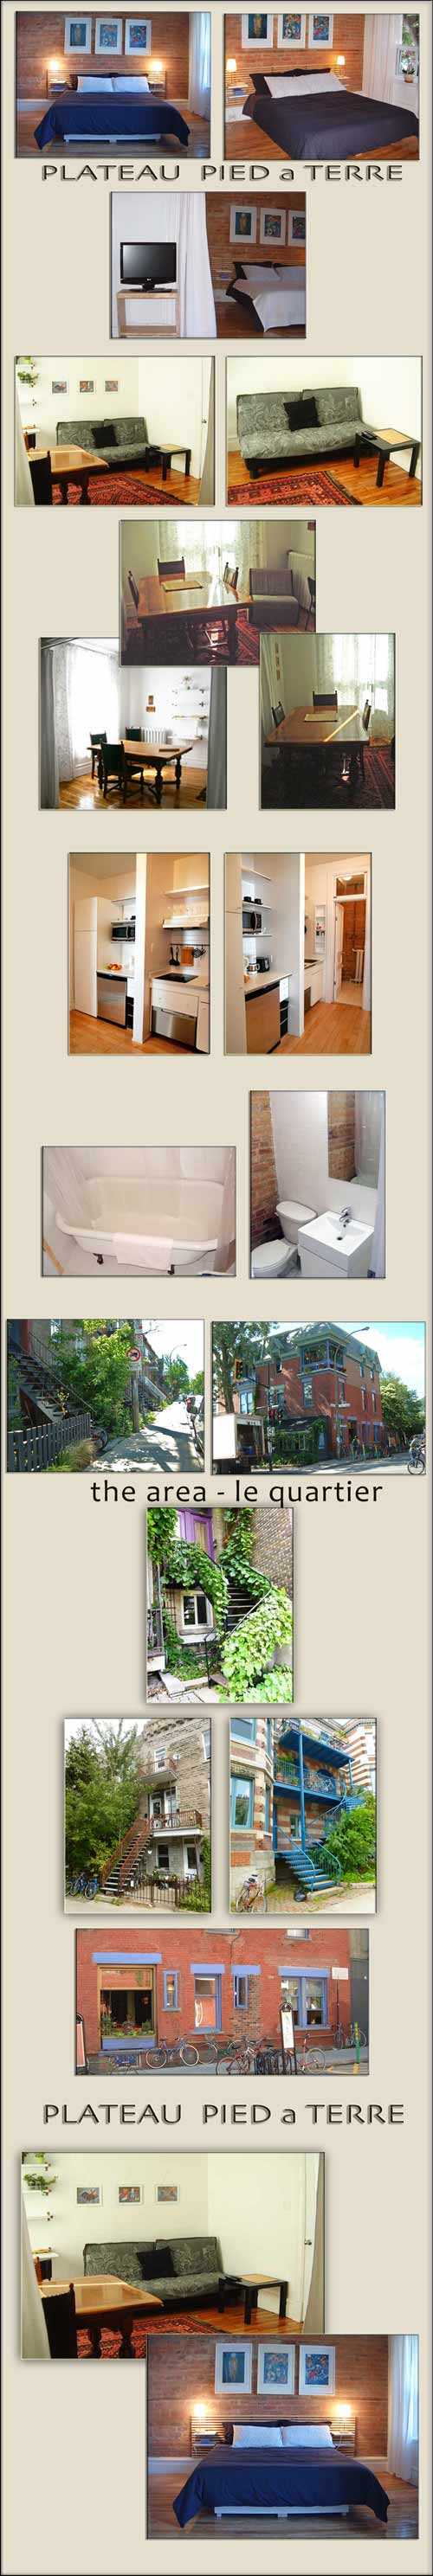 quebec vacation ideas must see quebec travel ideas